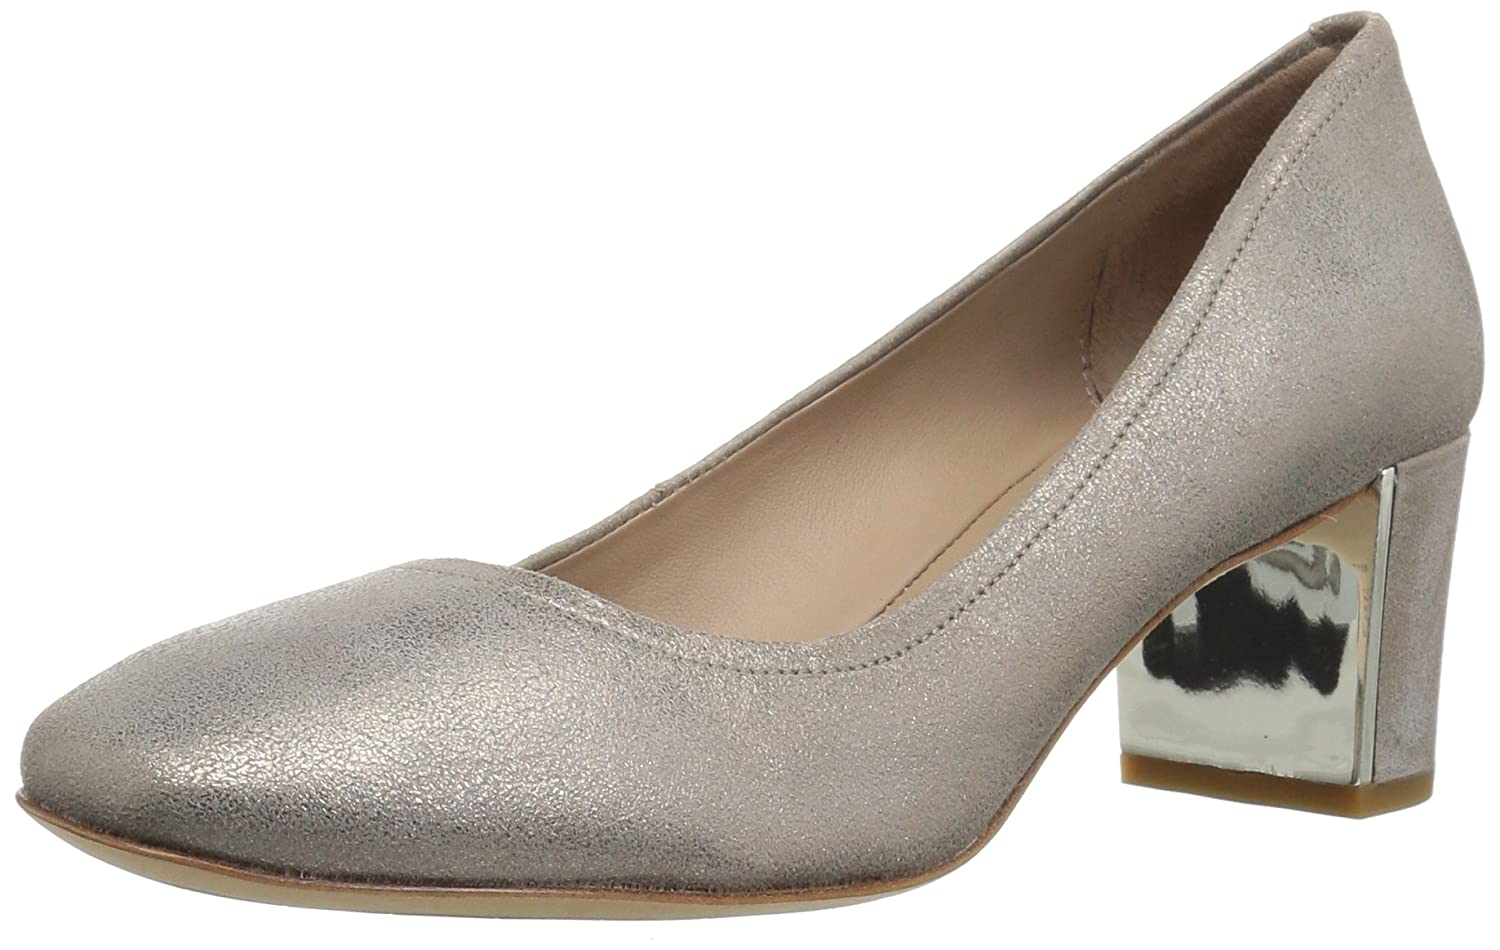 2b6c30f861e Amazon.com  Donald J Pliner Women s Corin Pump  Shoes